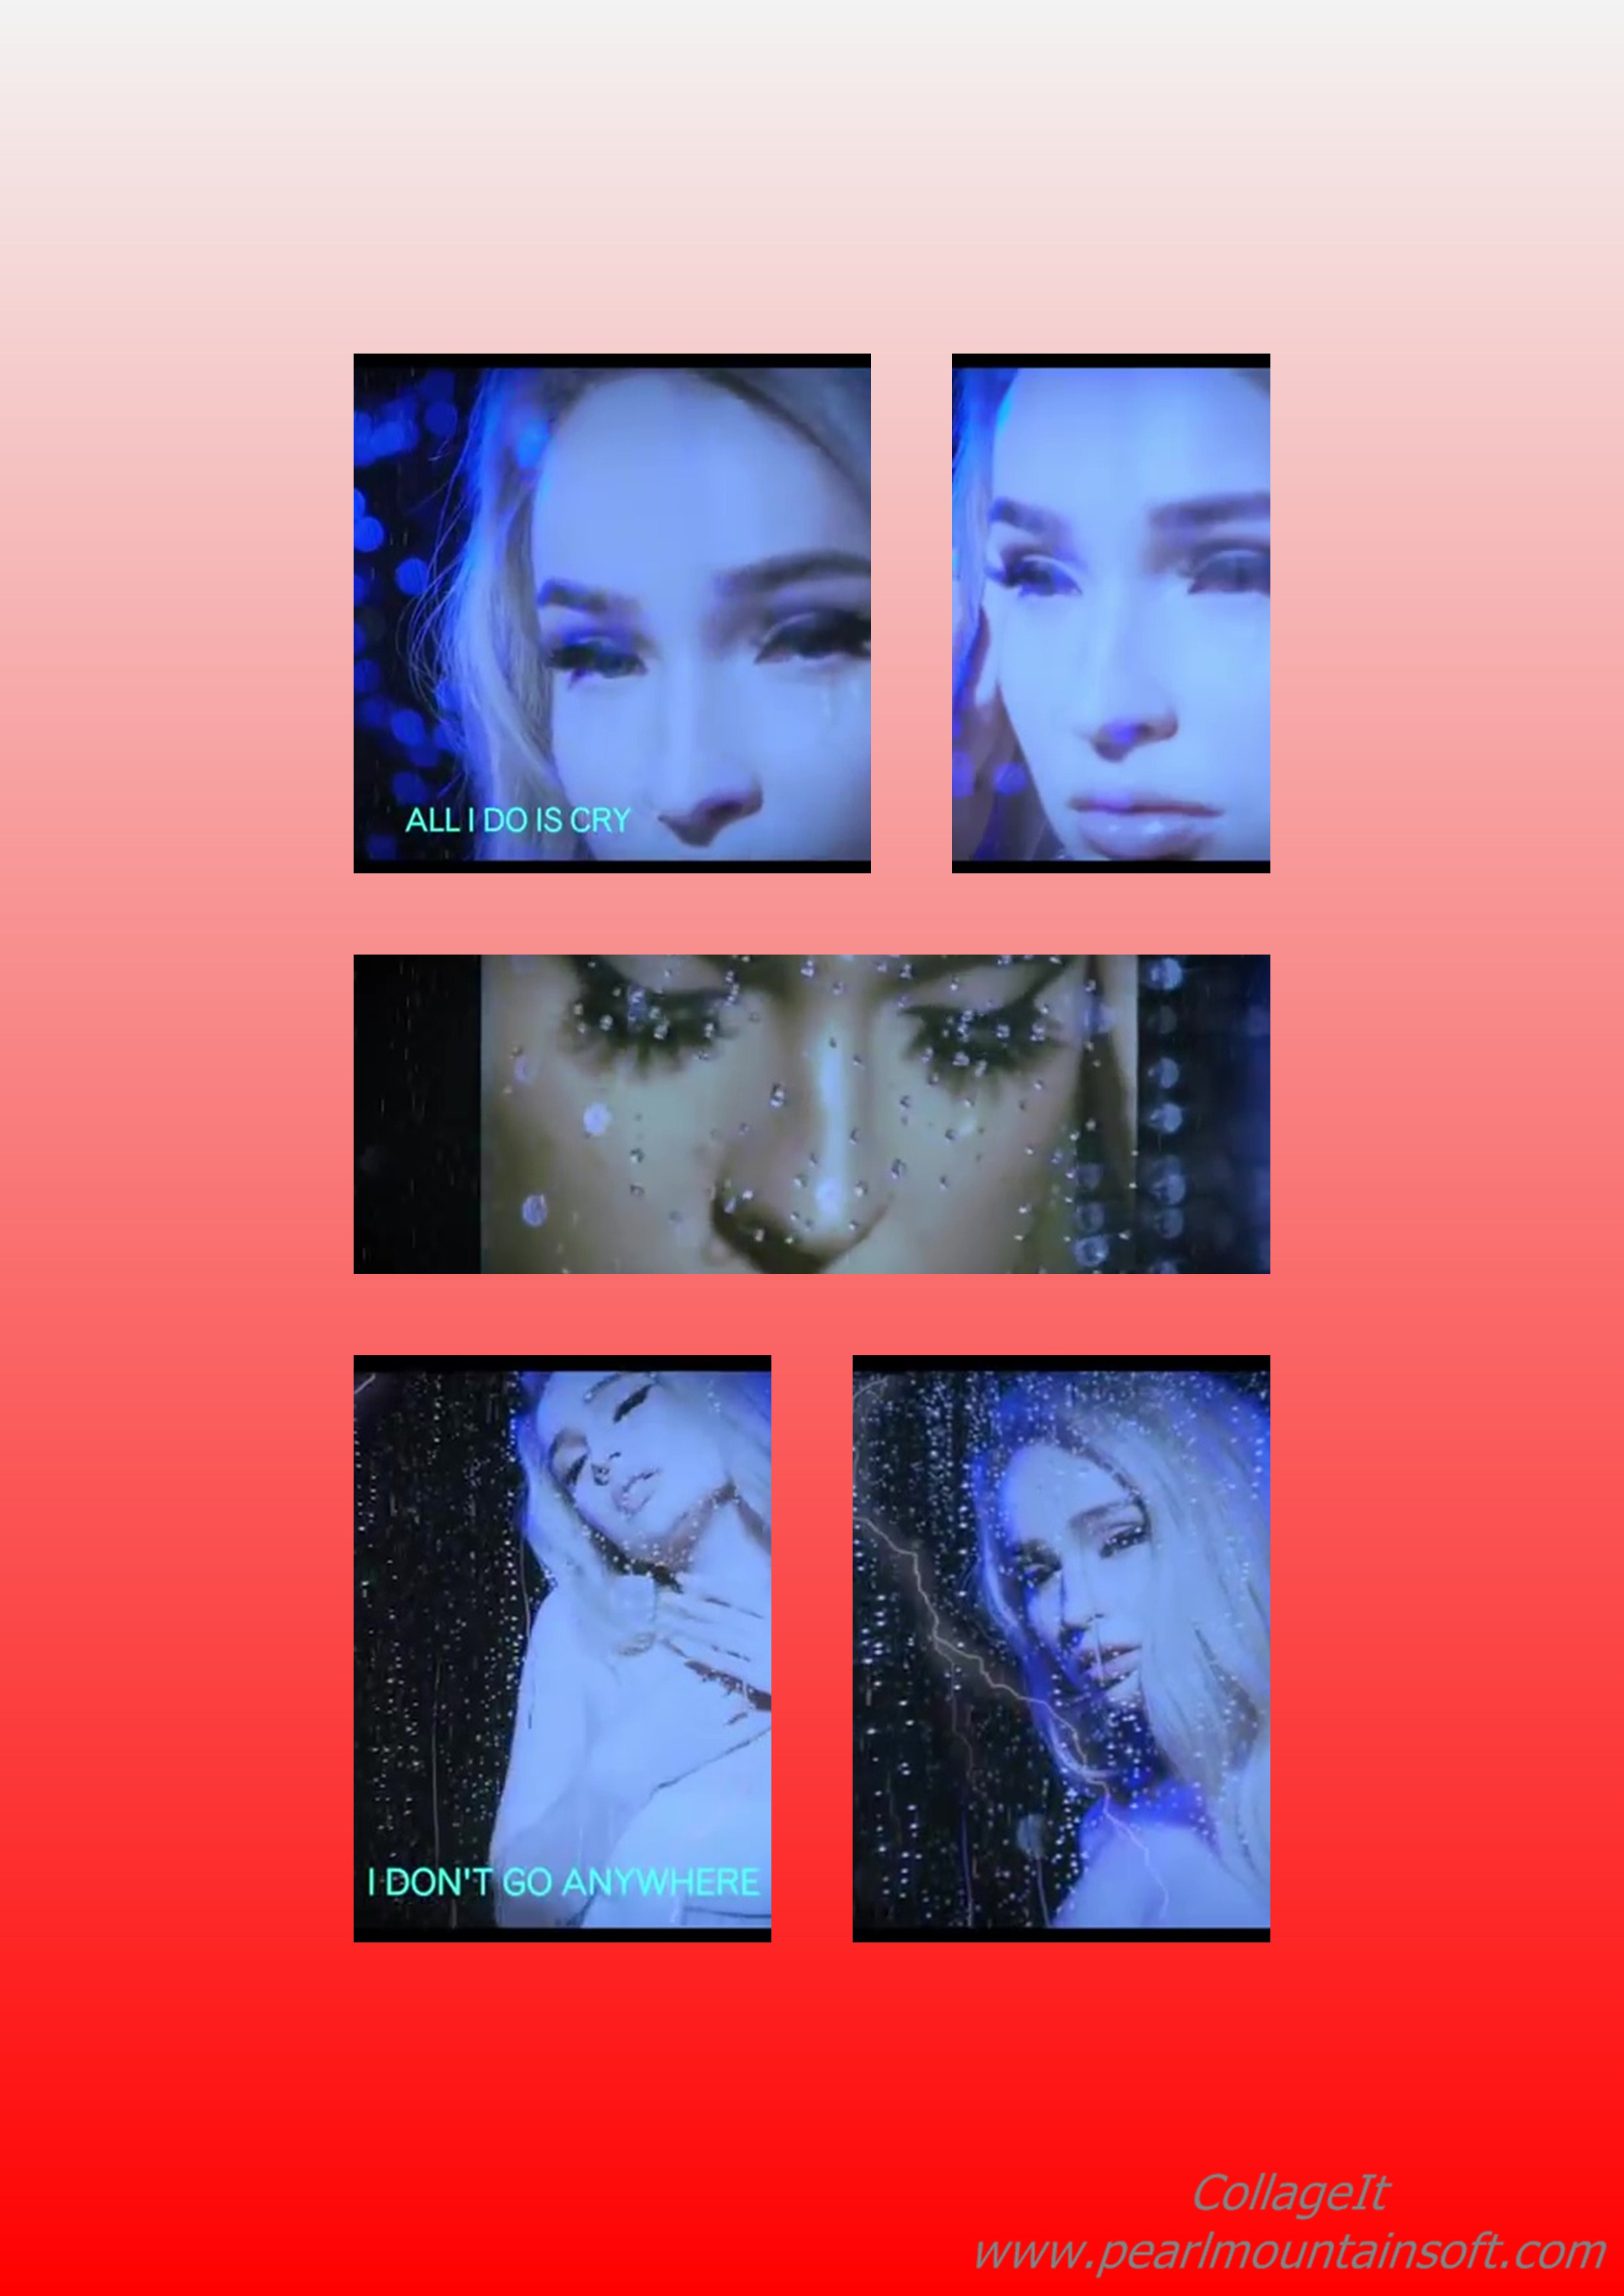 """You are currently viewing (+LYRICS+TRANSLATION+MEANING) MUSIC REVIEW: ALL I DO IS CRY BY KIM PETRAS """"AWWW! KIM PETRAS GO REALLY CRY TIRE O!"""""""